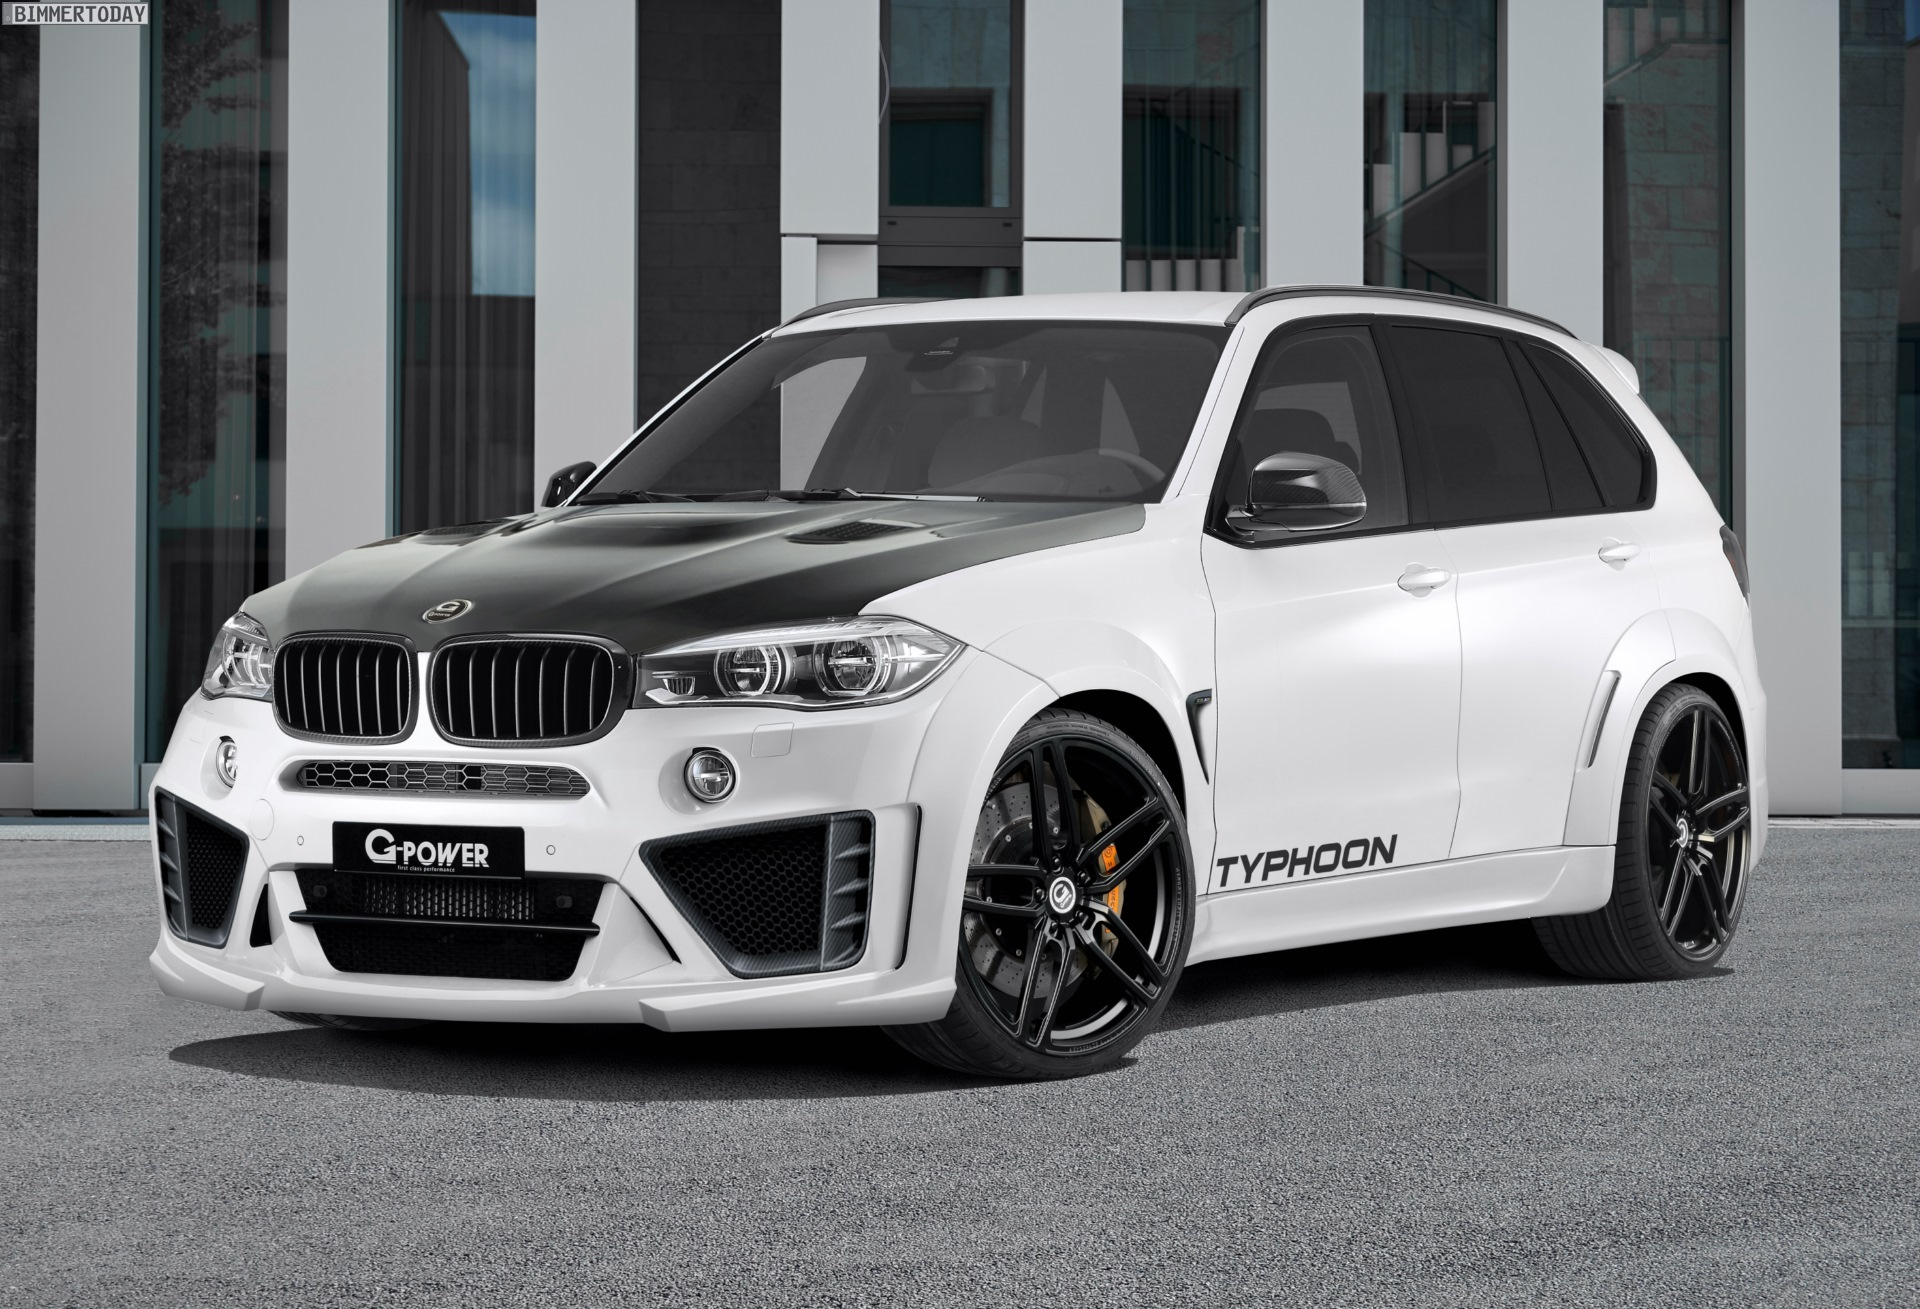 G Power Bmw X5 M Typhoon Breitbau F85 Mit 750 Ps